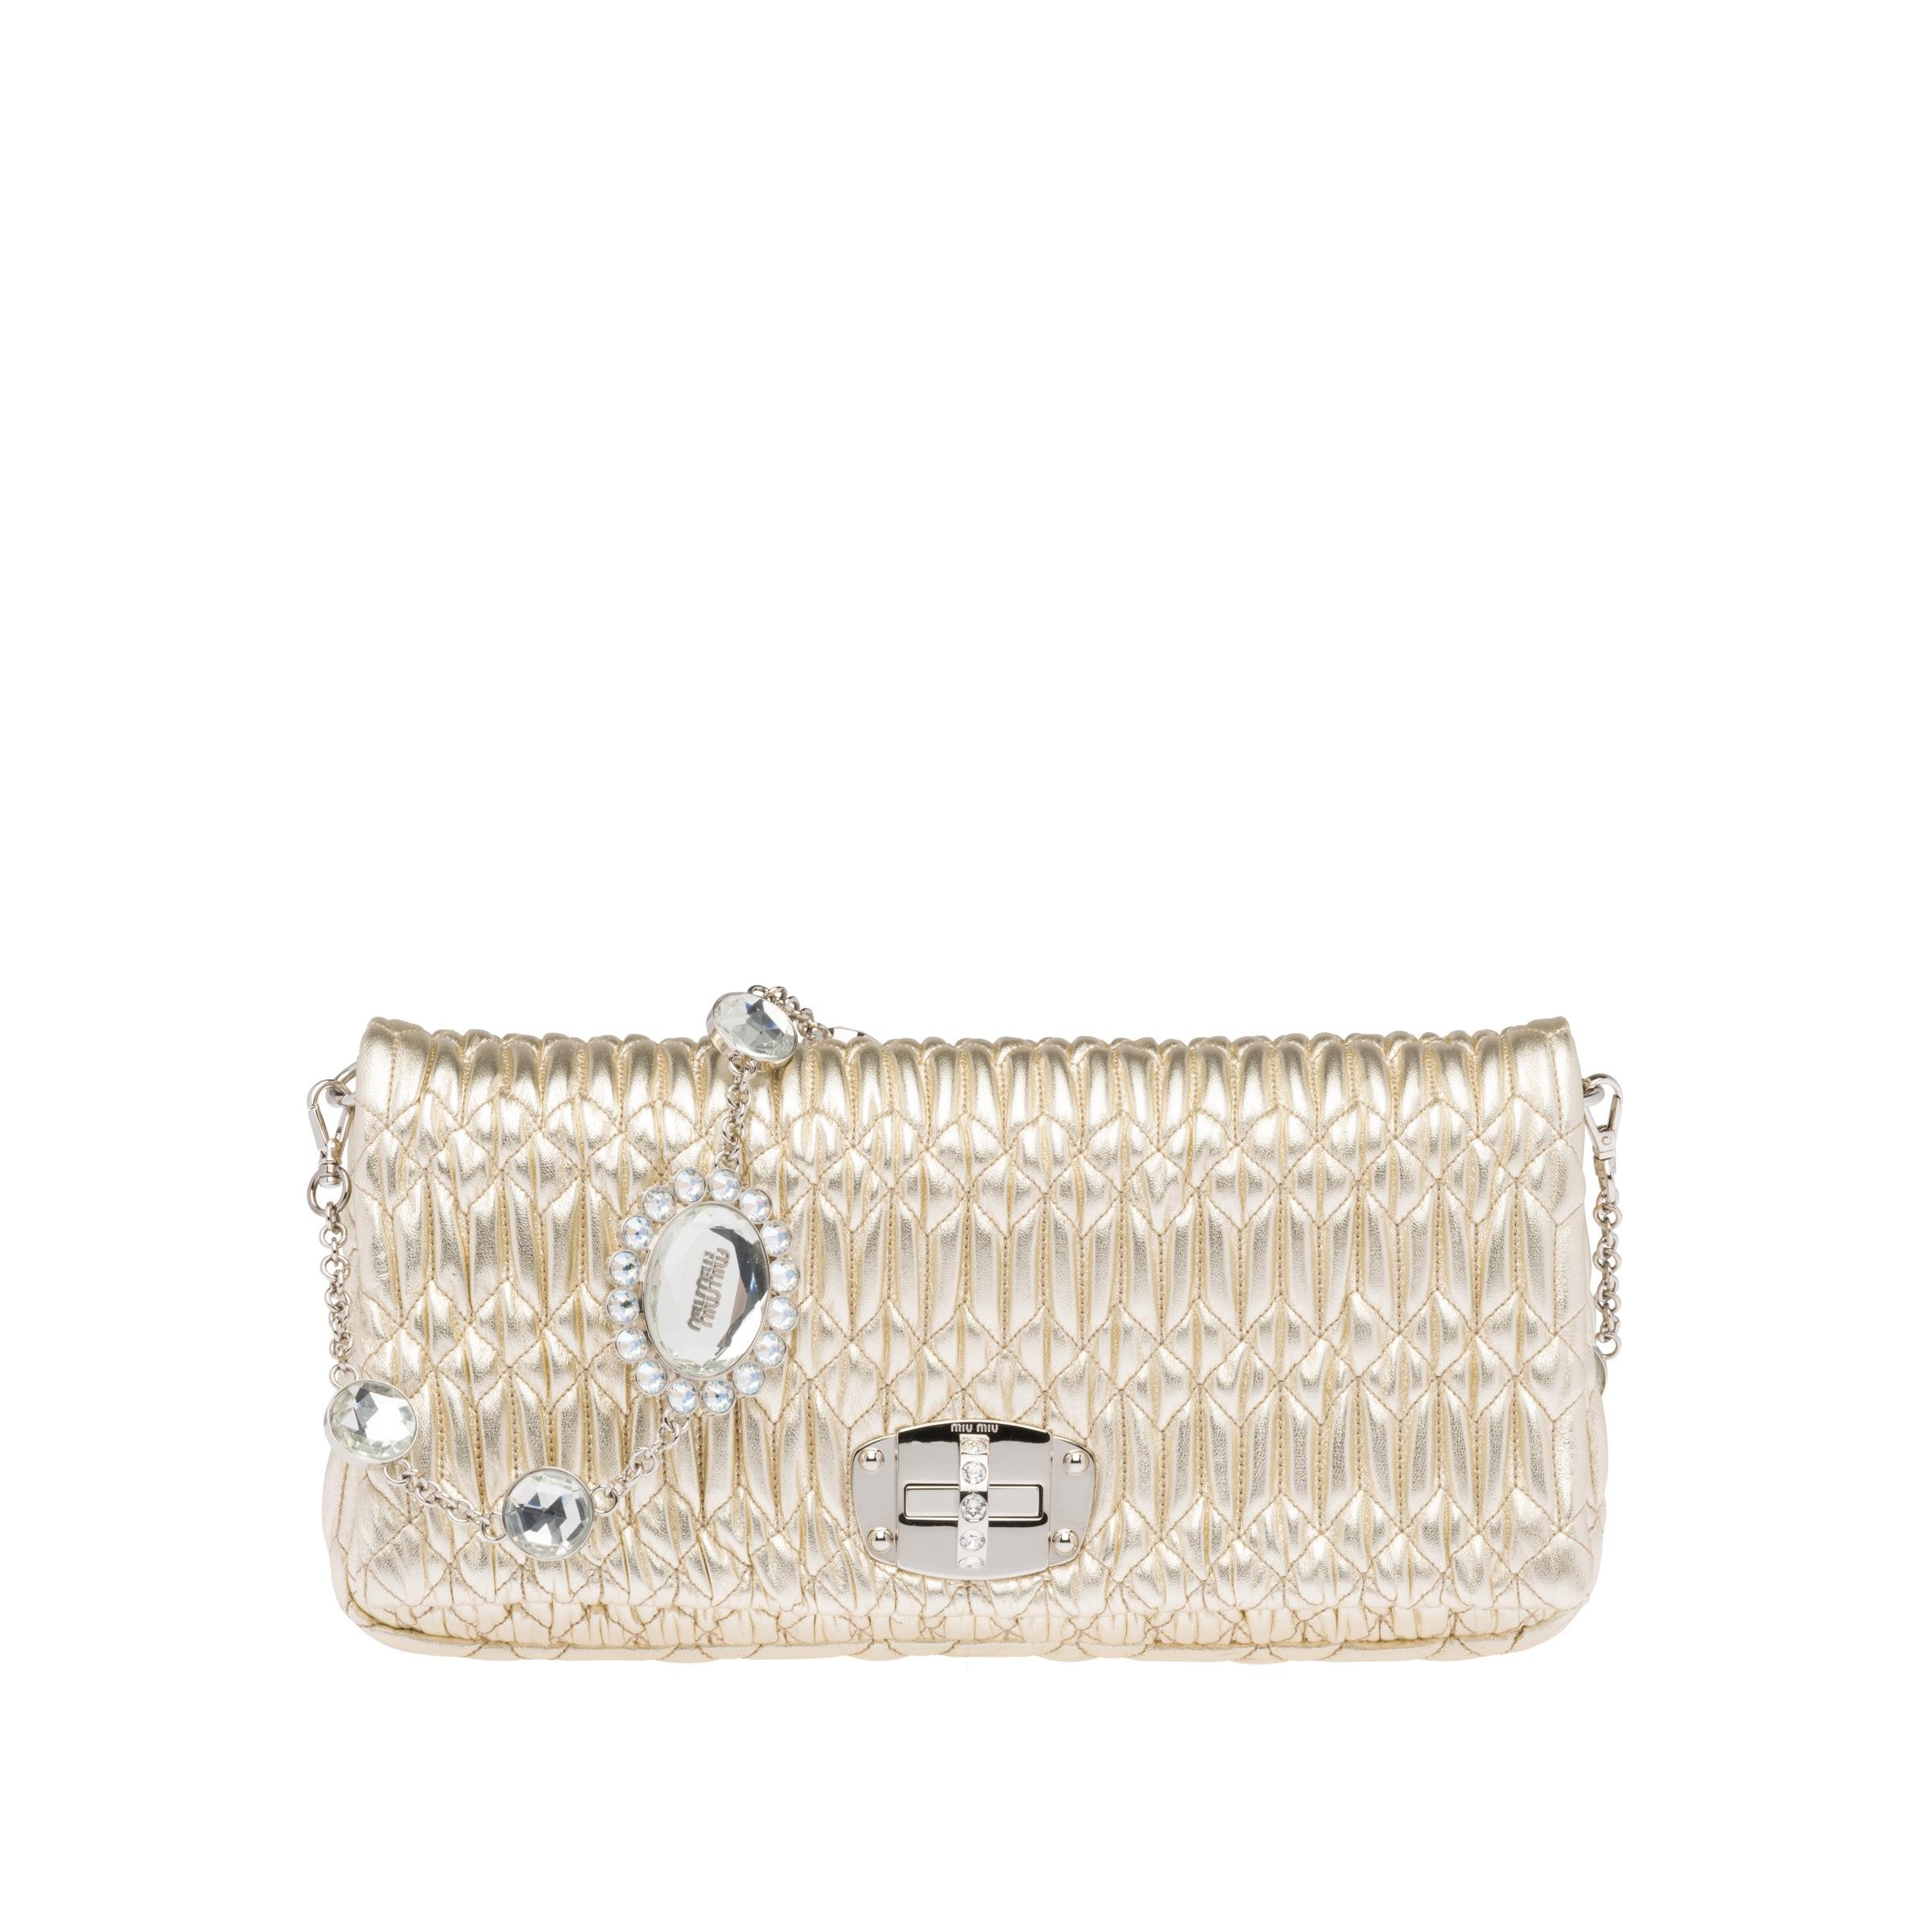 Iconic Crystal Cloqué Nappa Leather Bag Women Pyrite